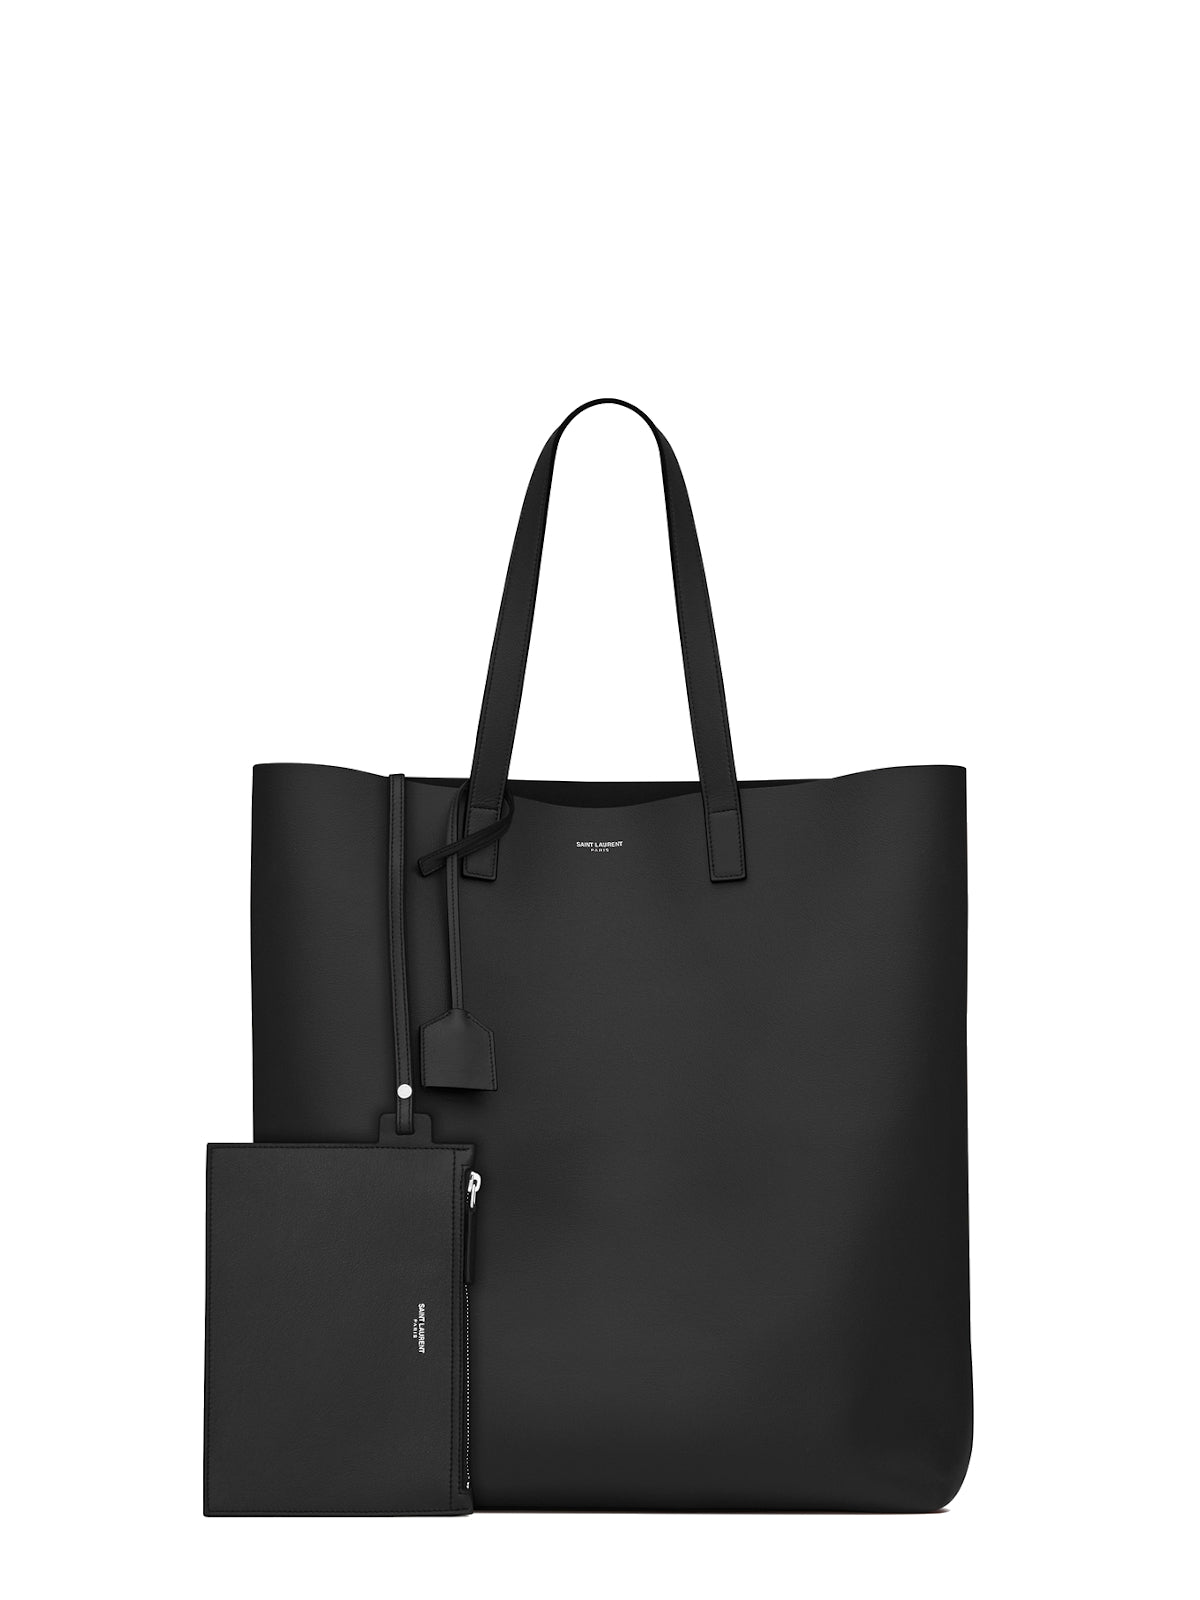 YSL CITY SHOPPING BAG